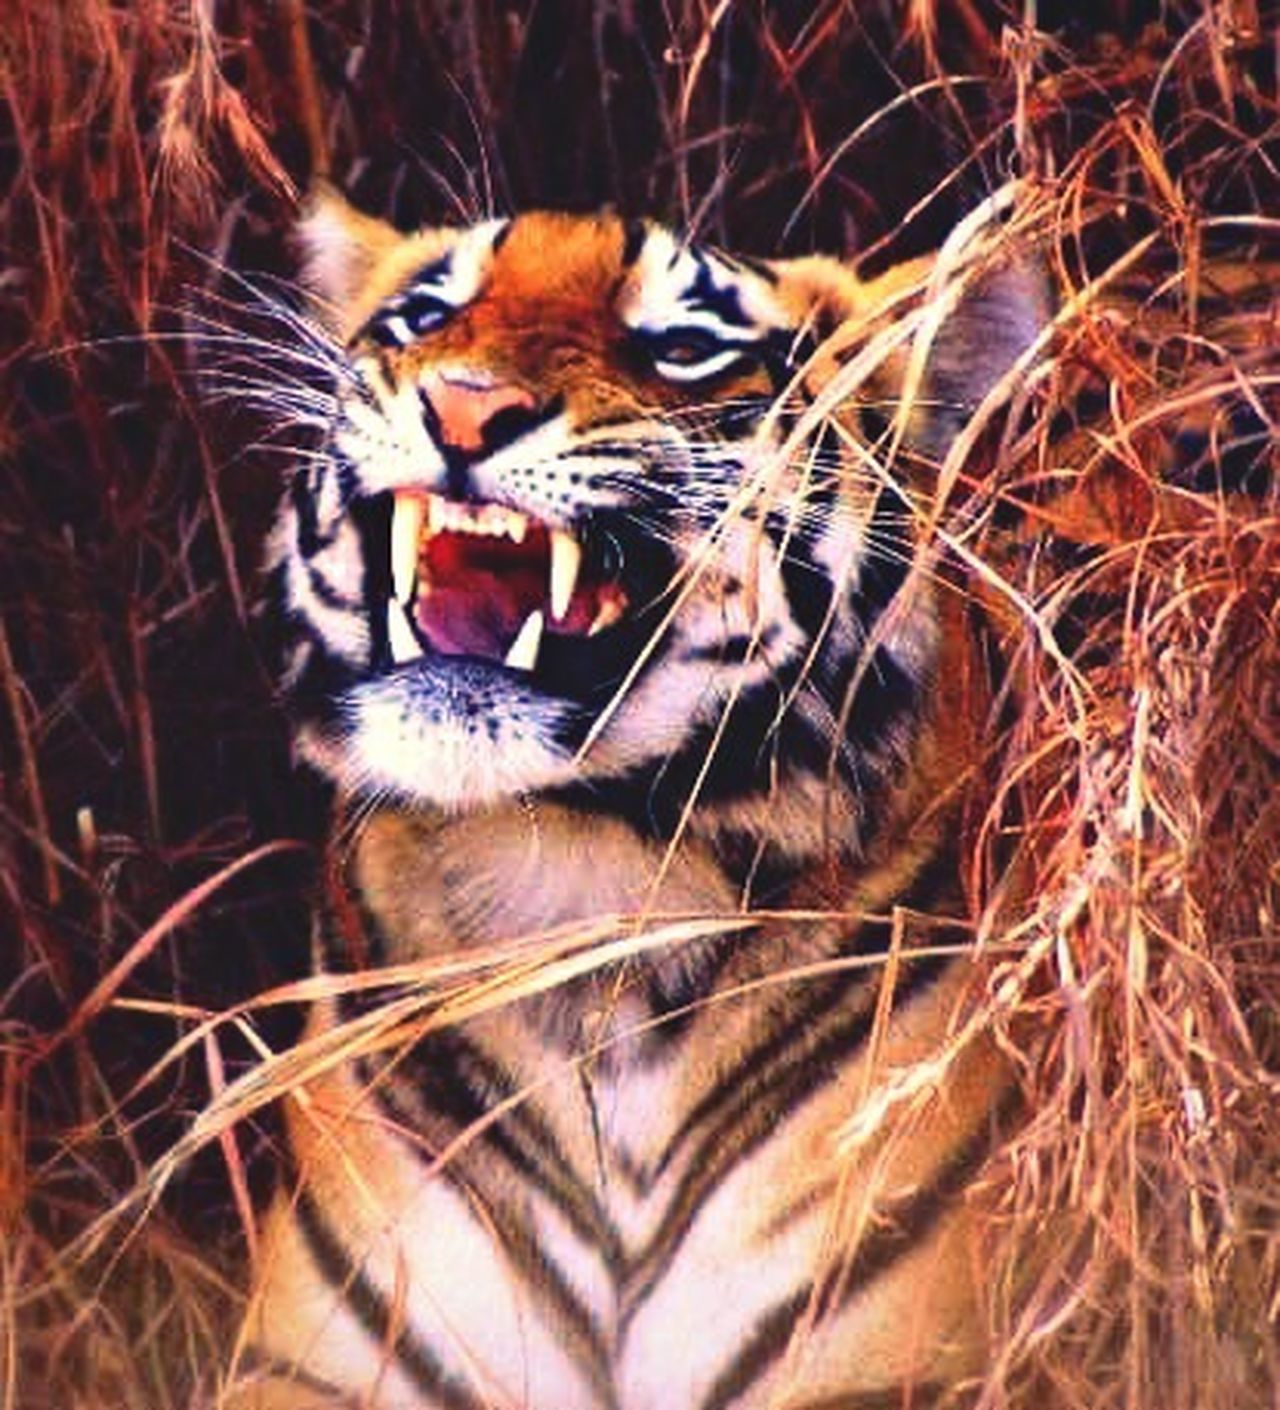 Royal Bengal Tiger Tiger Wildlife Animals In The Wild Wildlife Encounter King Of The Jungle Predator